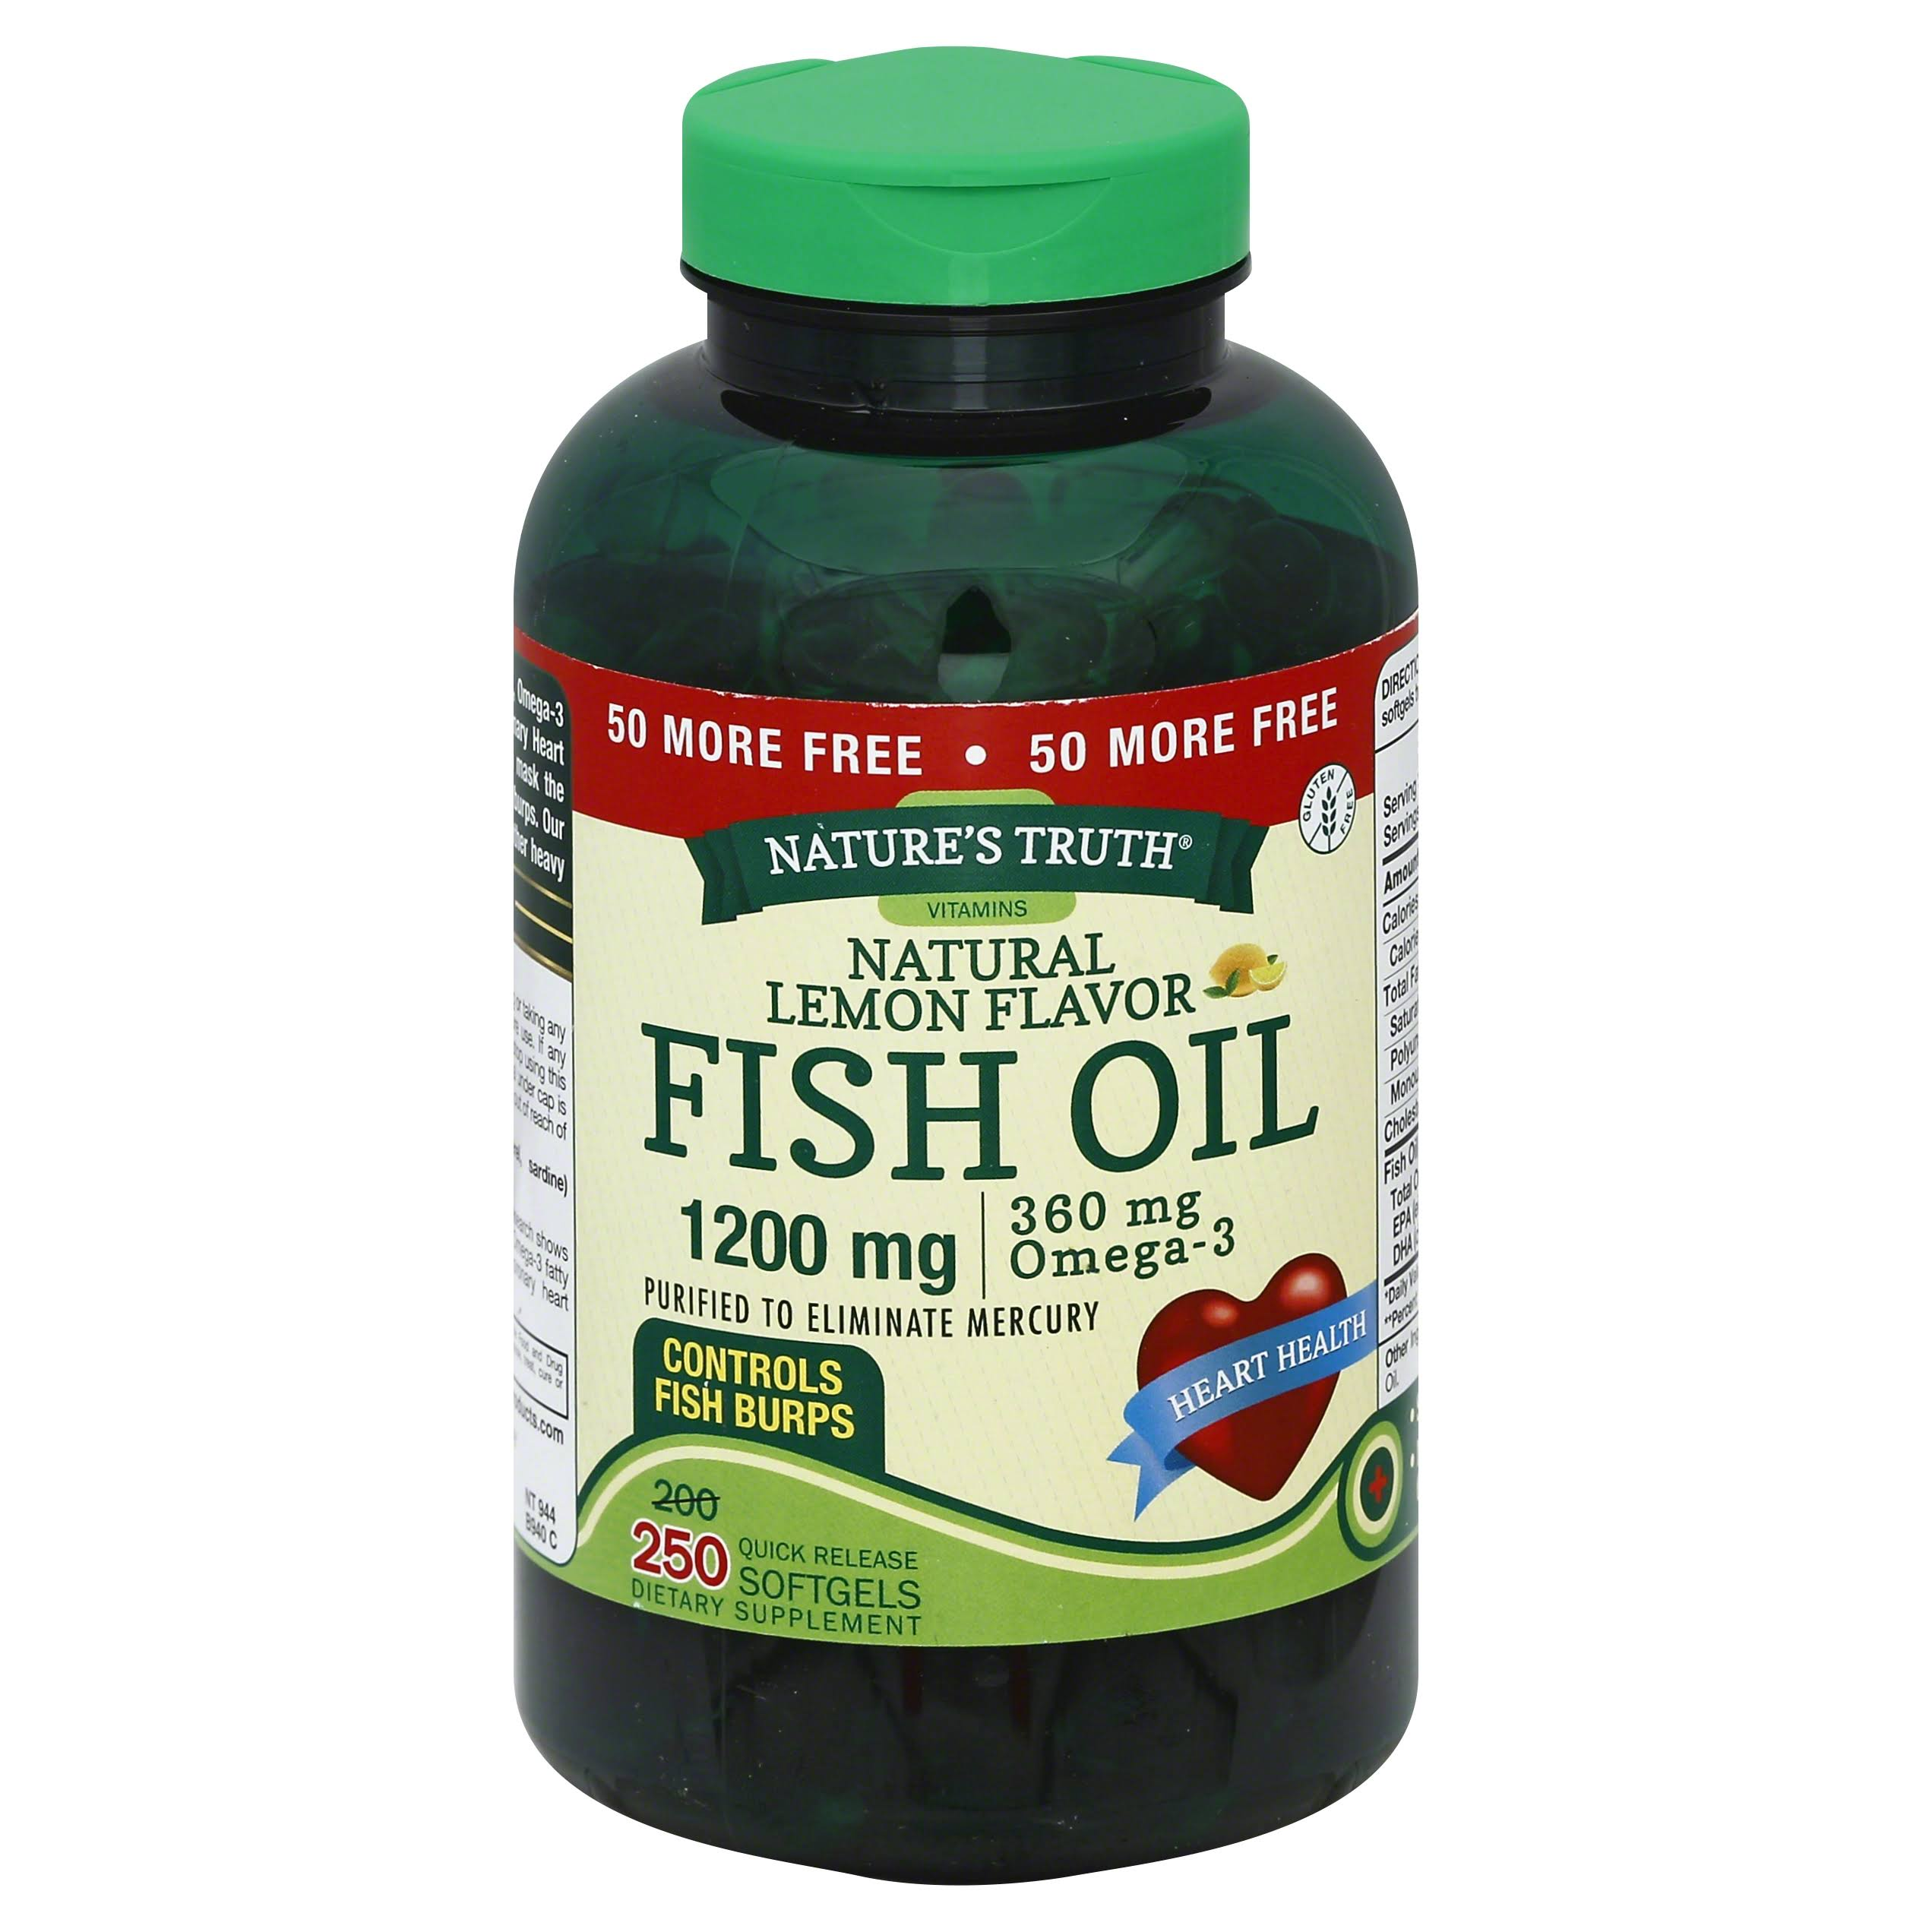 Nature's Truth 1200 Mg Omega-3 Fish Oil Softgels - Lemon, 250ct